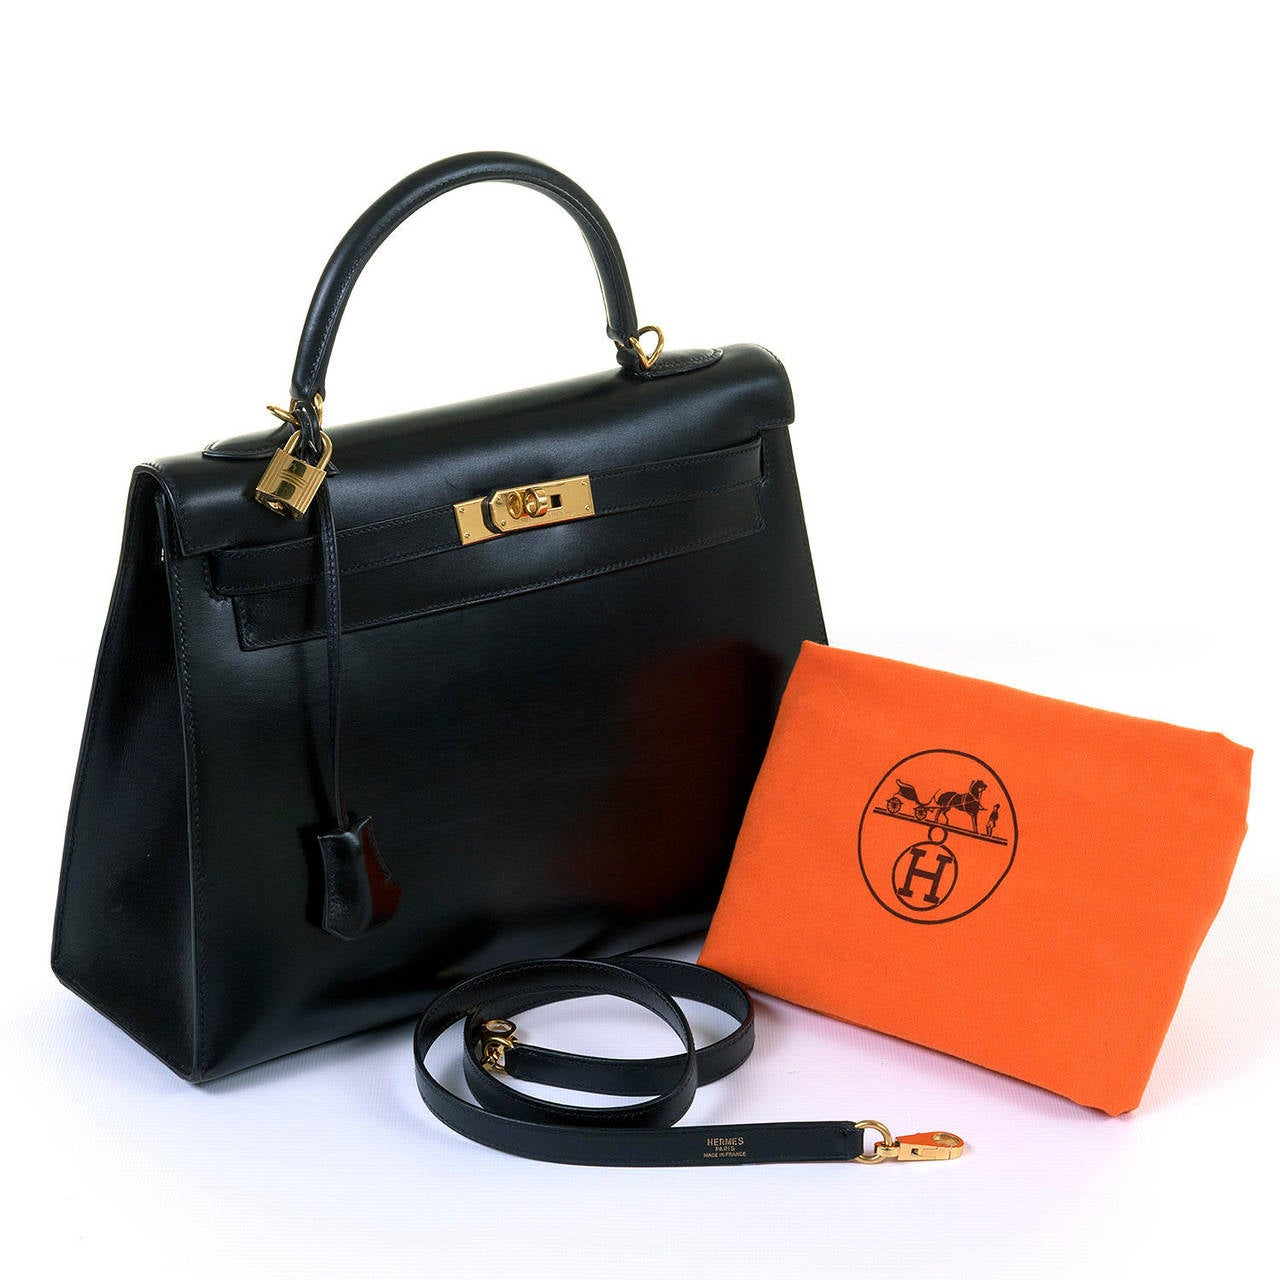 PRISTINE Hermes Kelly 33cm \u0026#39;Sellier\u0026#39; Bag in Black Box Leather with ...